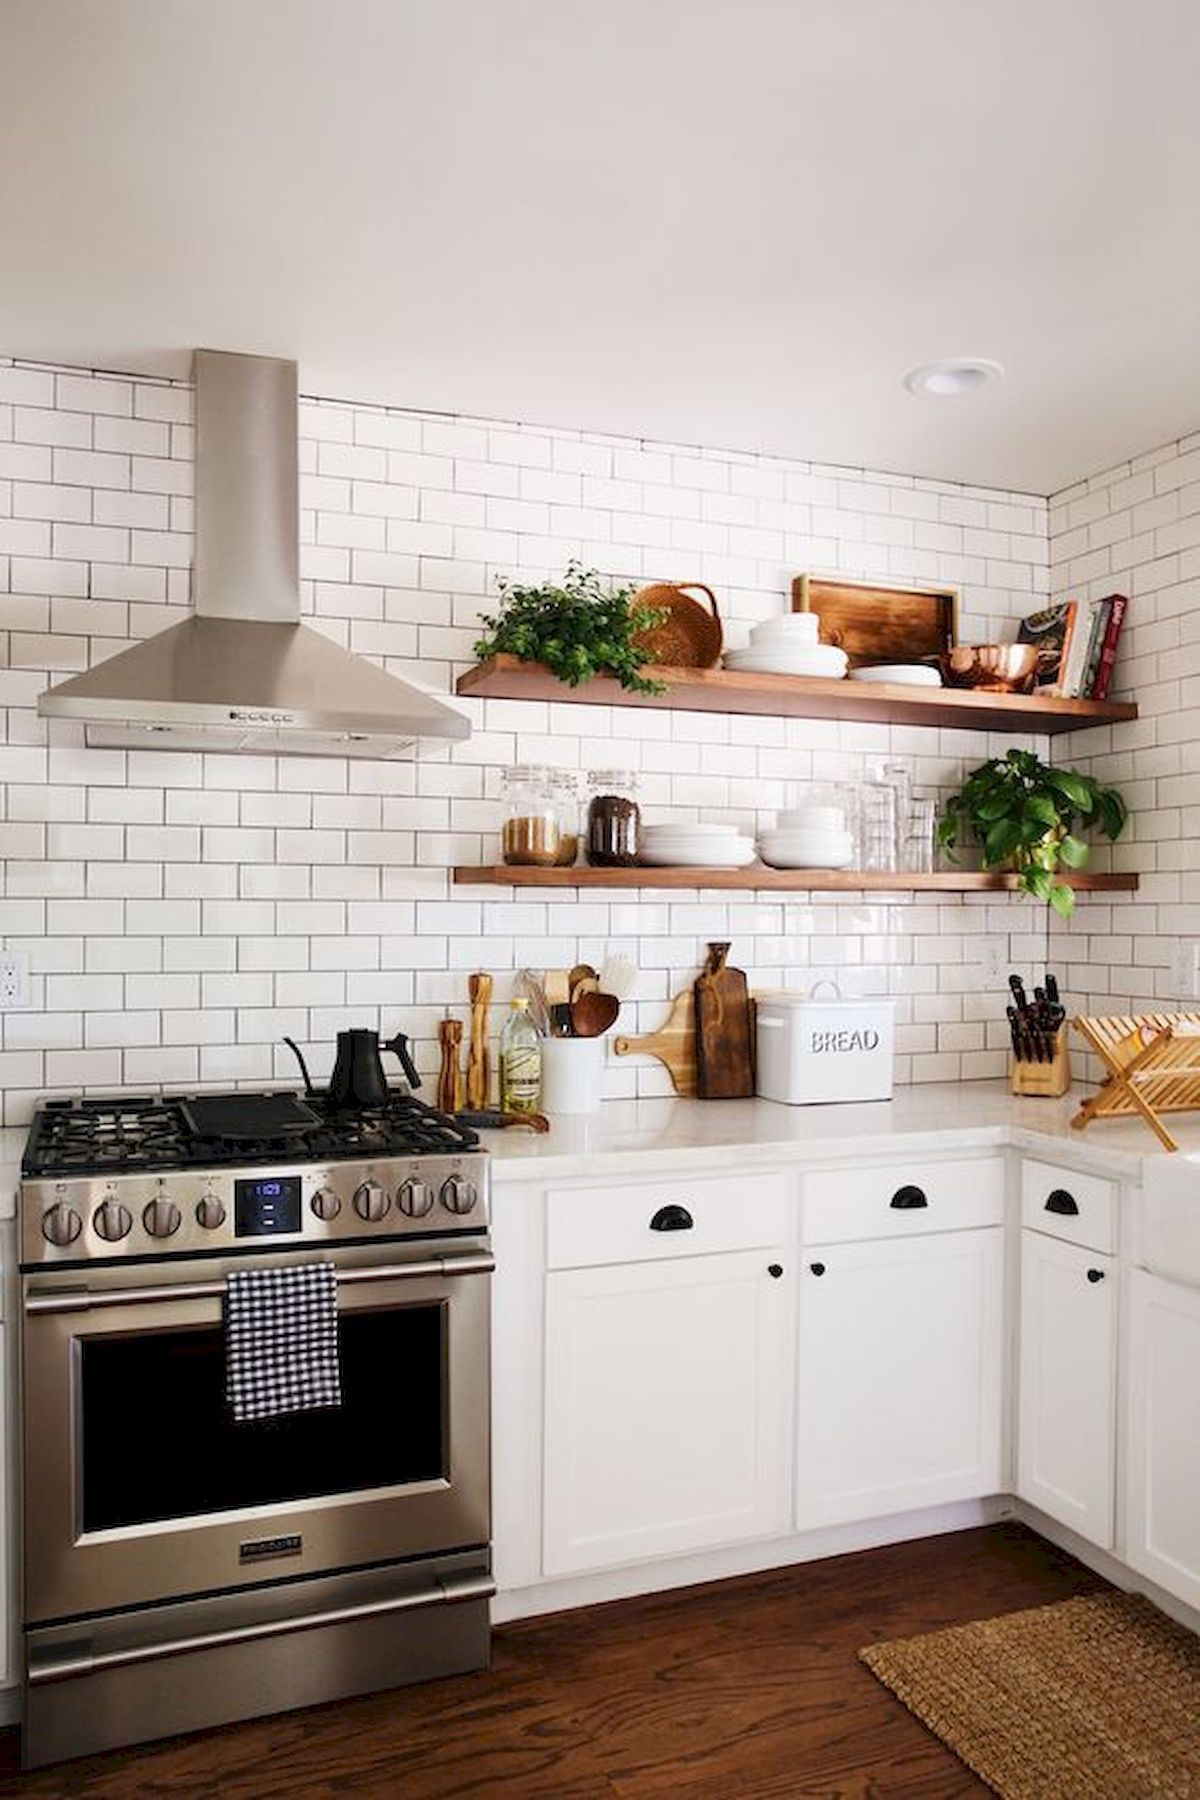 10 Ultimate Small Kitchen Design Ideas In Your Tiny House